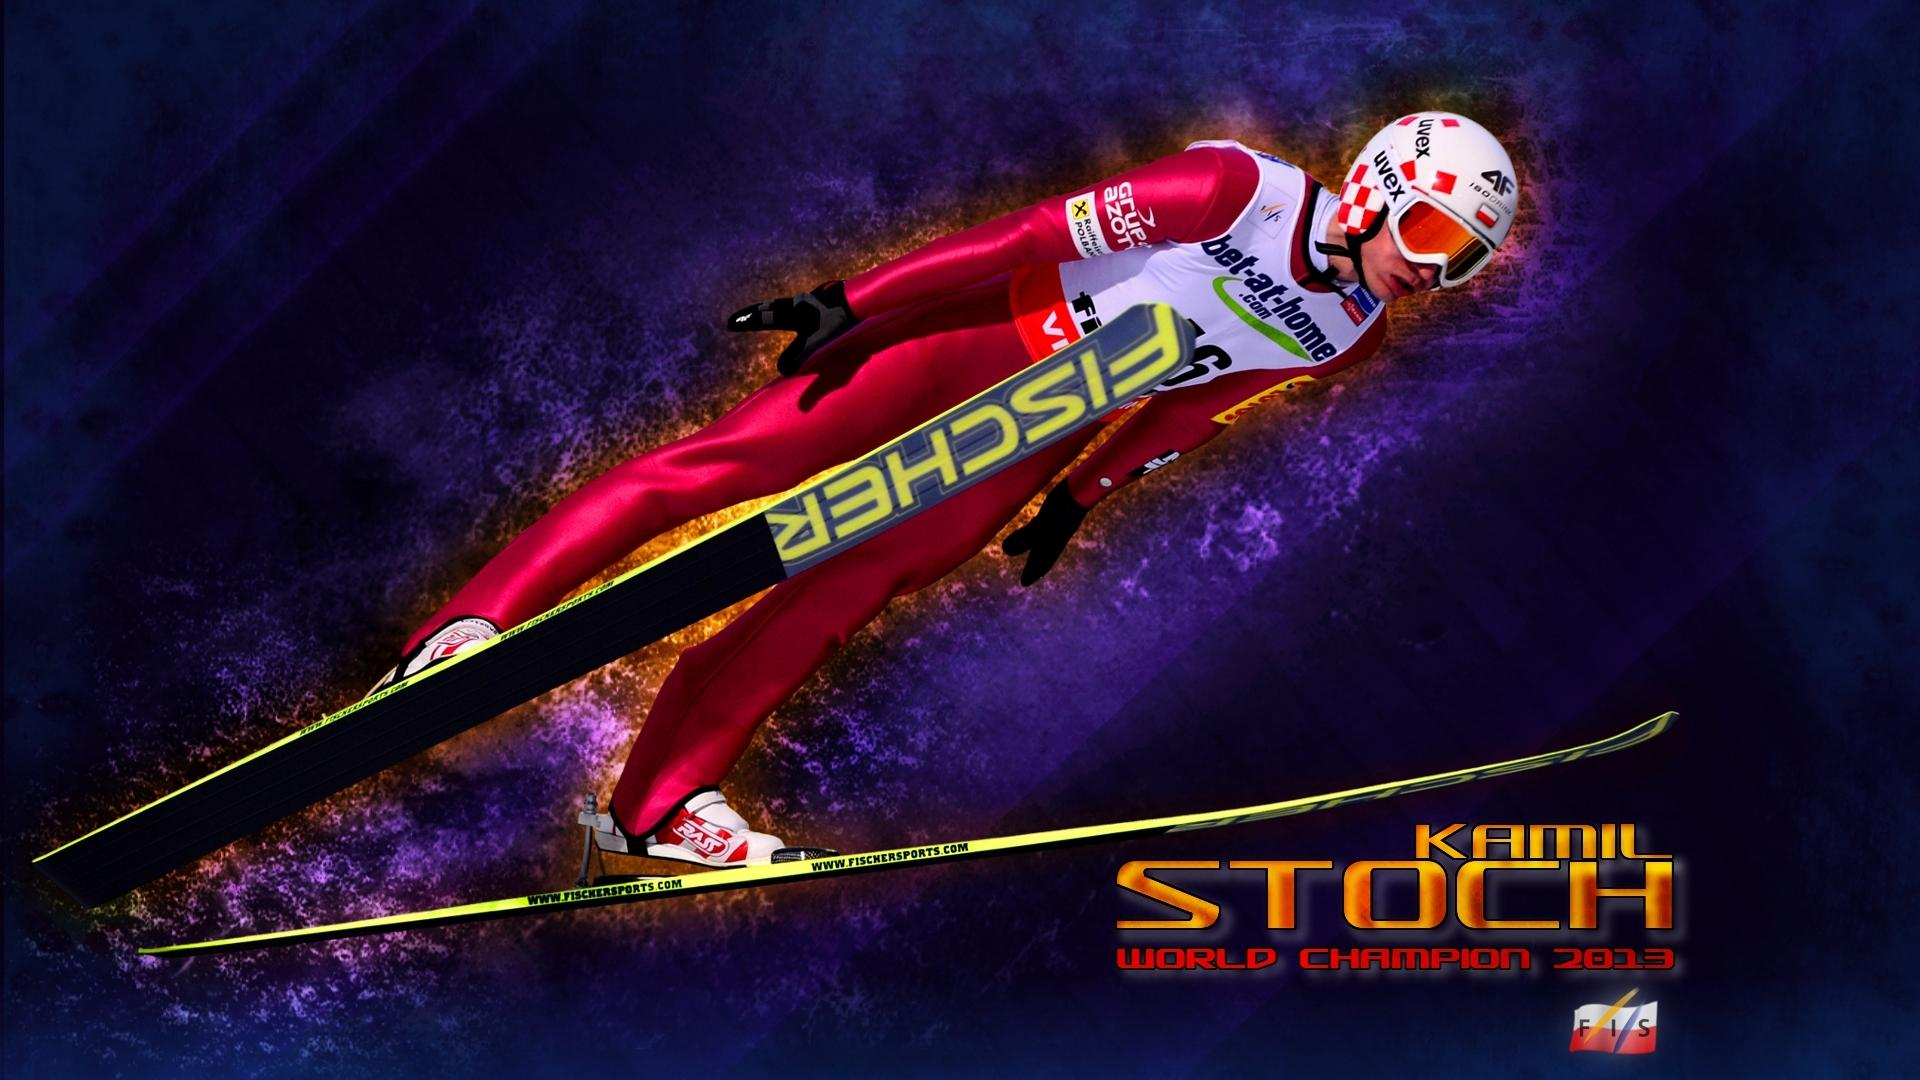 1920x1080 - Kamil Stoch Wallpapers 25